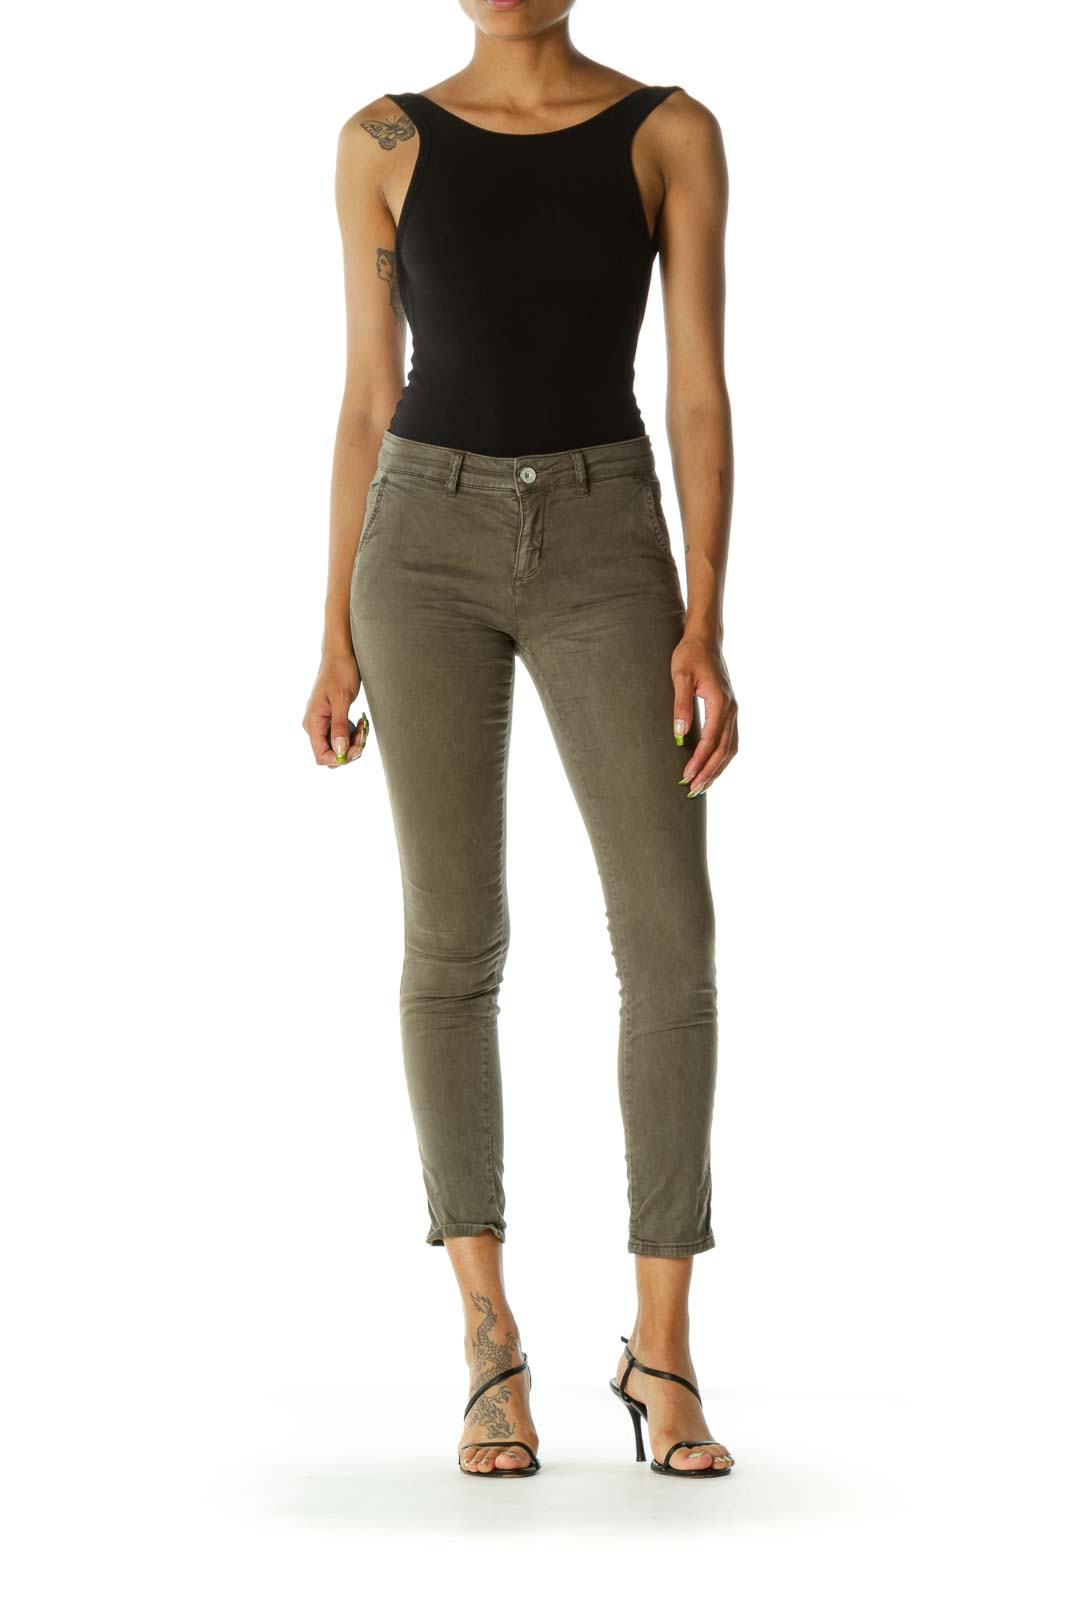 Olive Green Pocketed Slim Pants